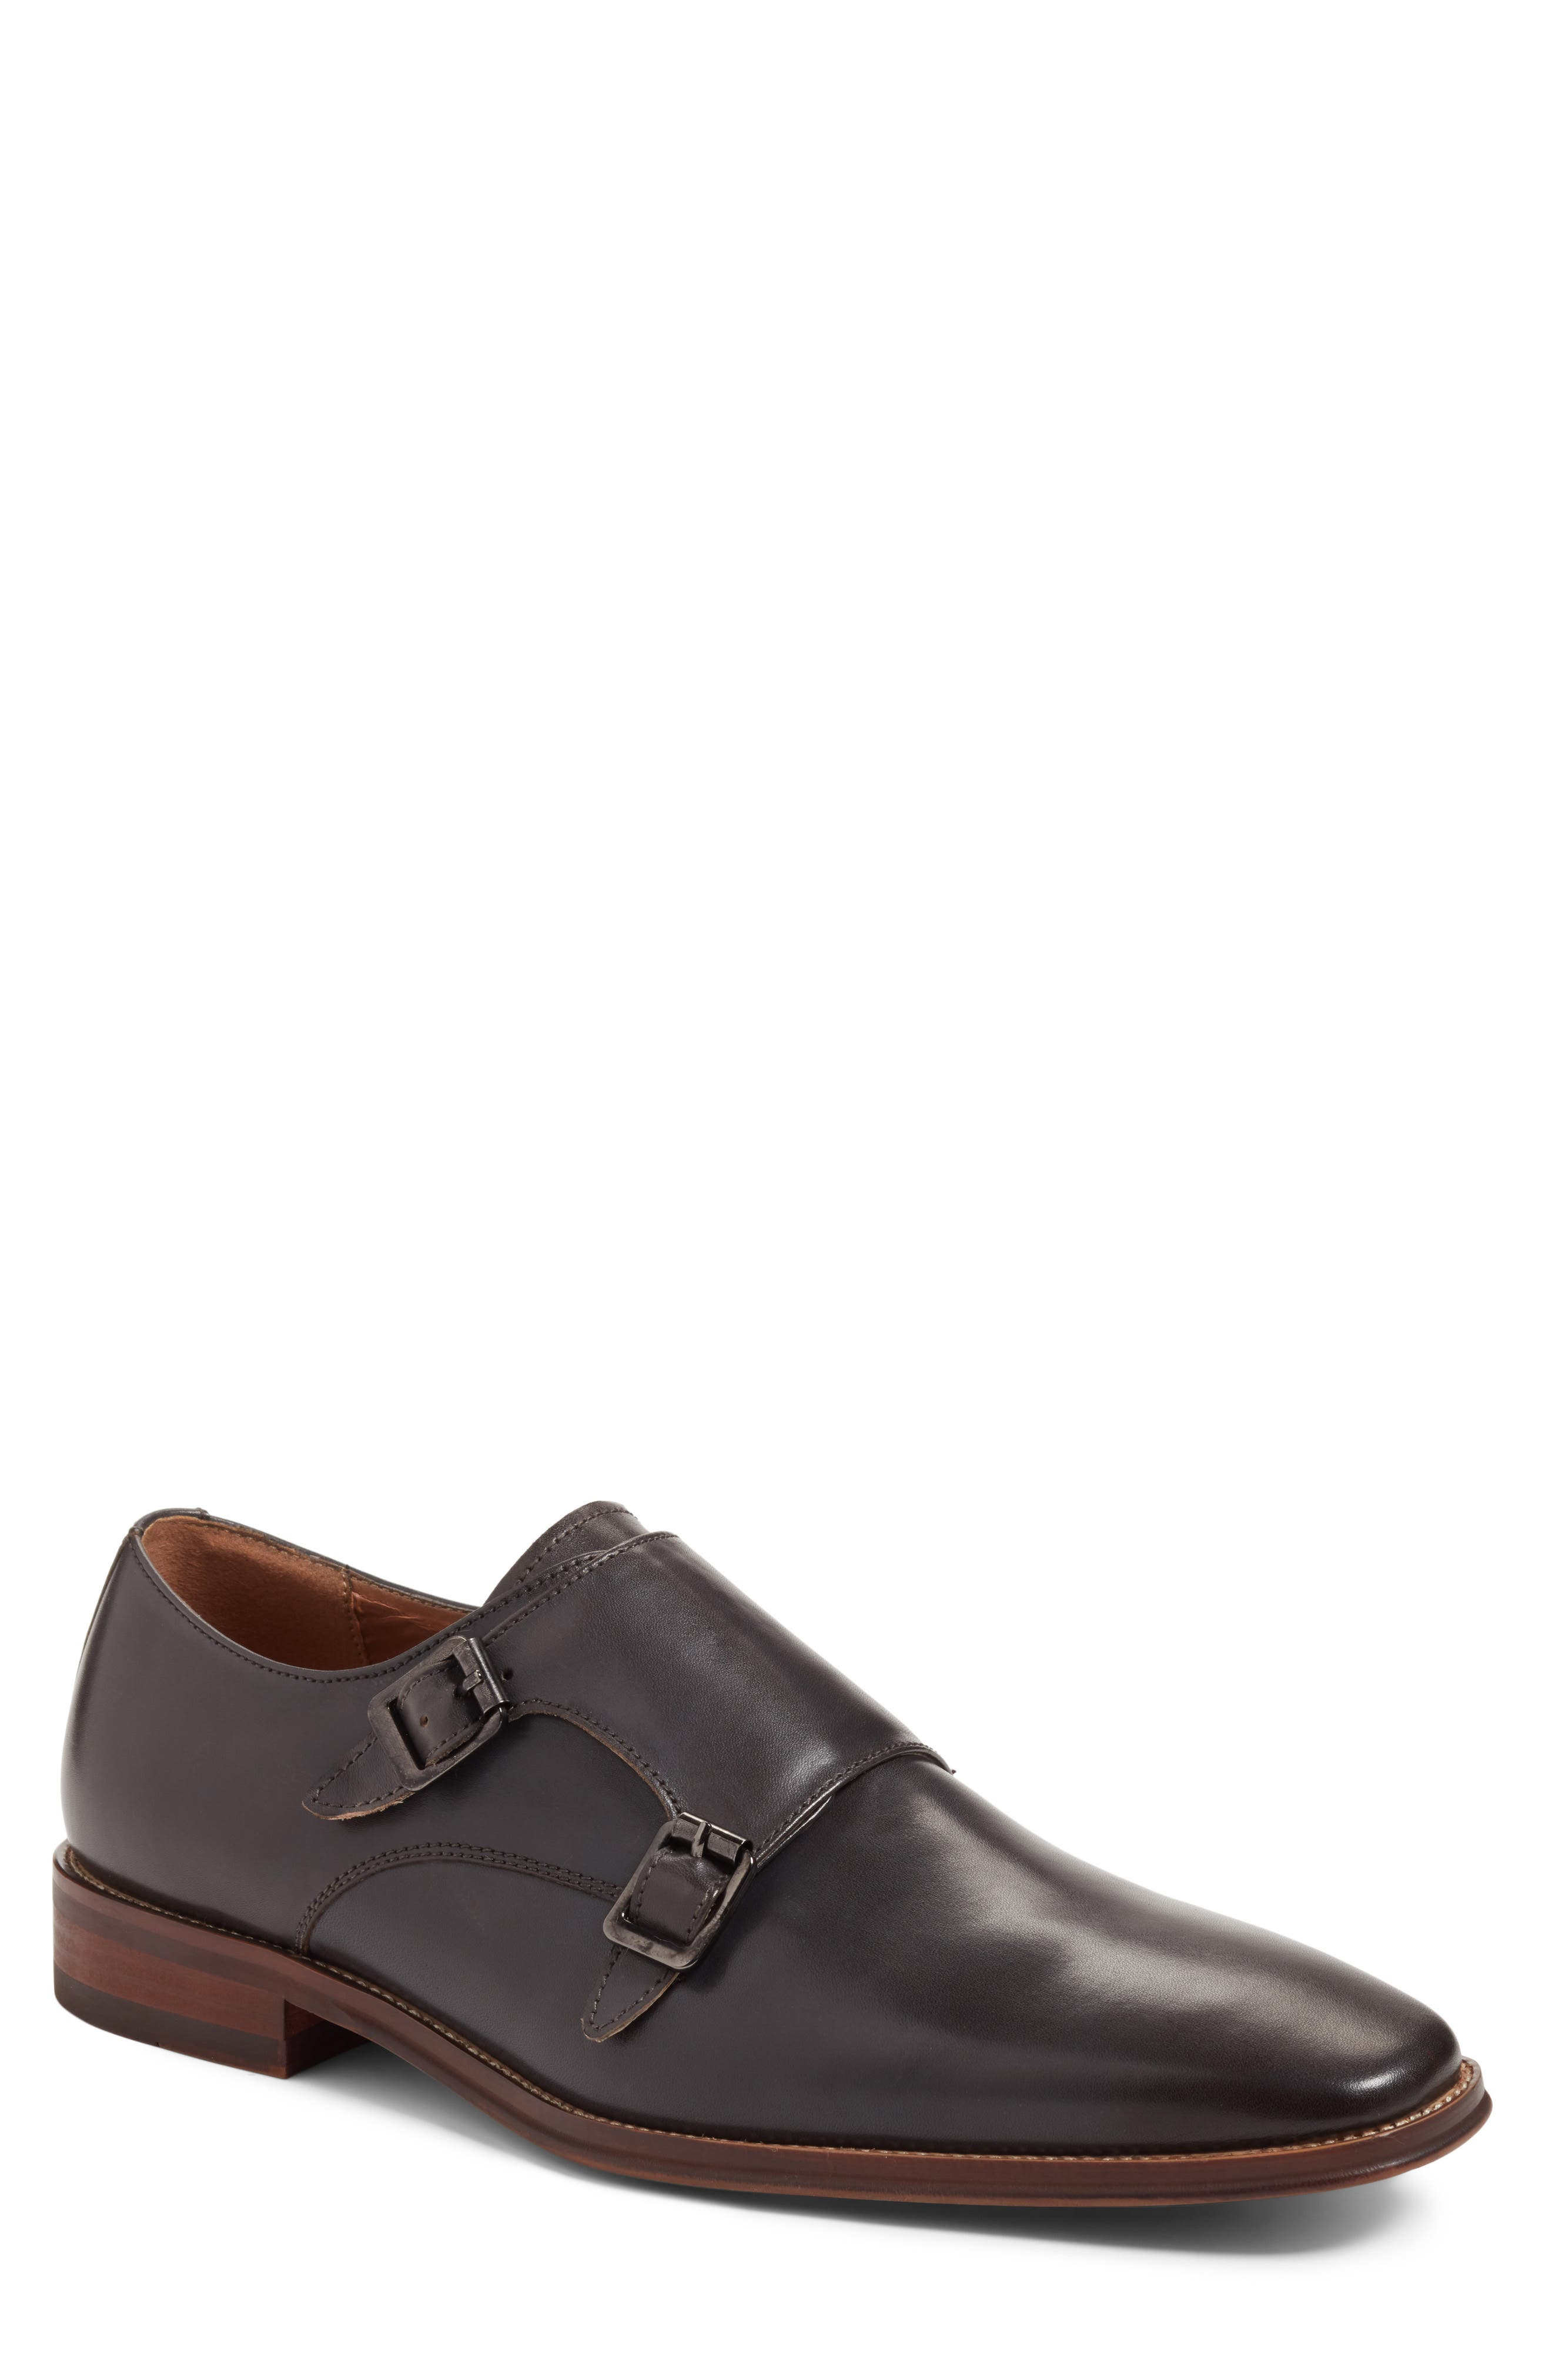 Sedona Double Strap Monk Shoe,                         Main,                         color,